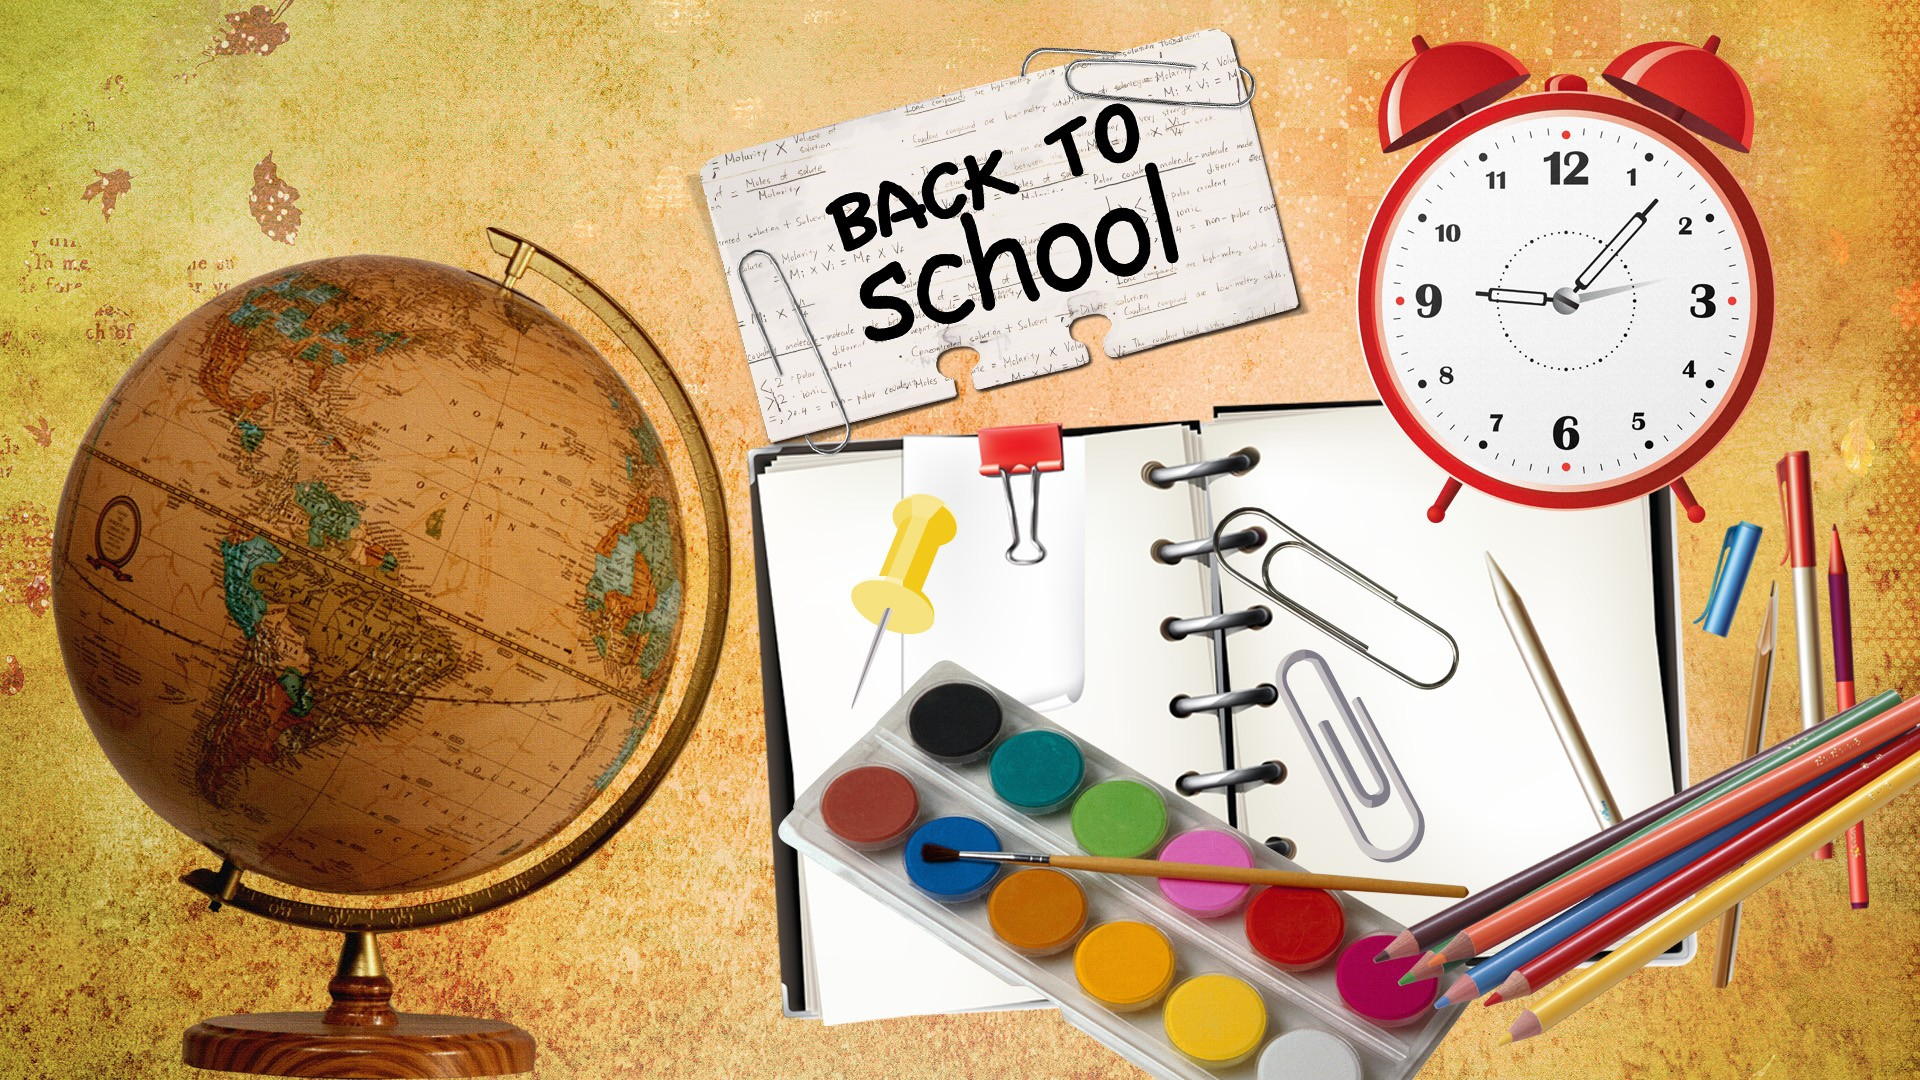 Download Back to School Background 1920x1080